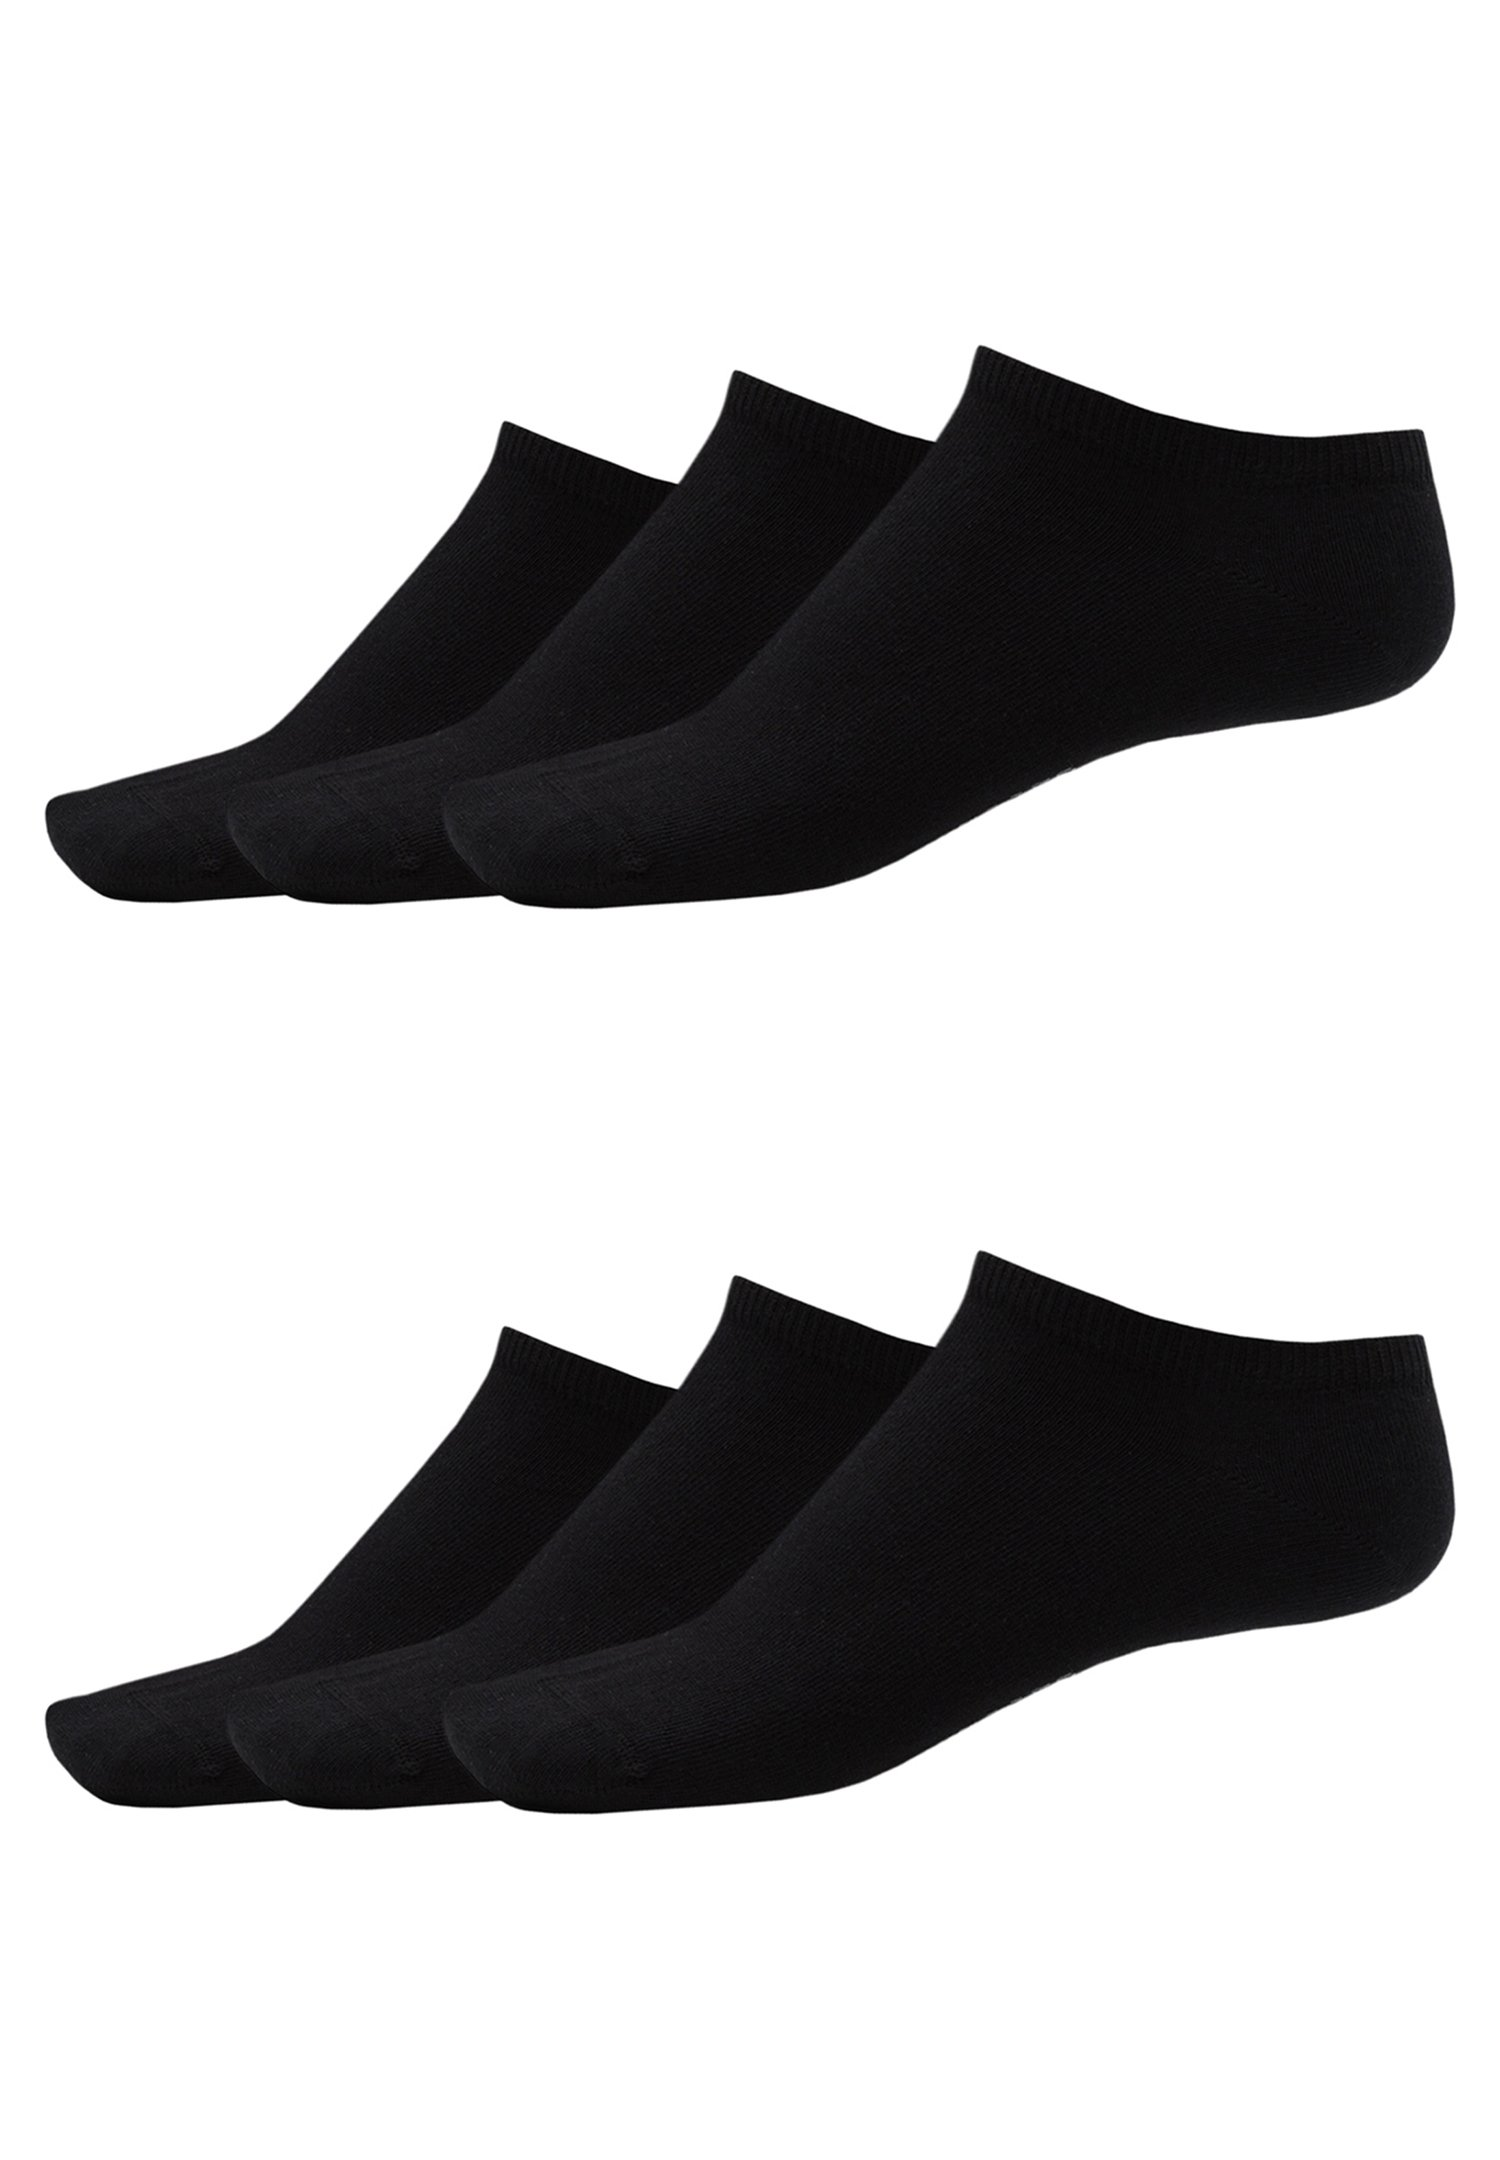 Femme 6 PACK - Chaussettes